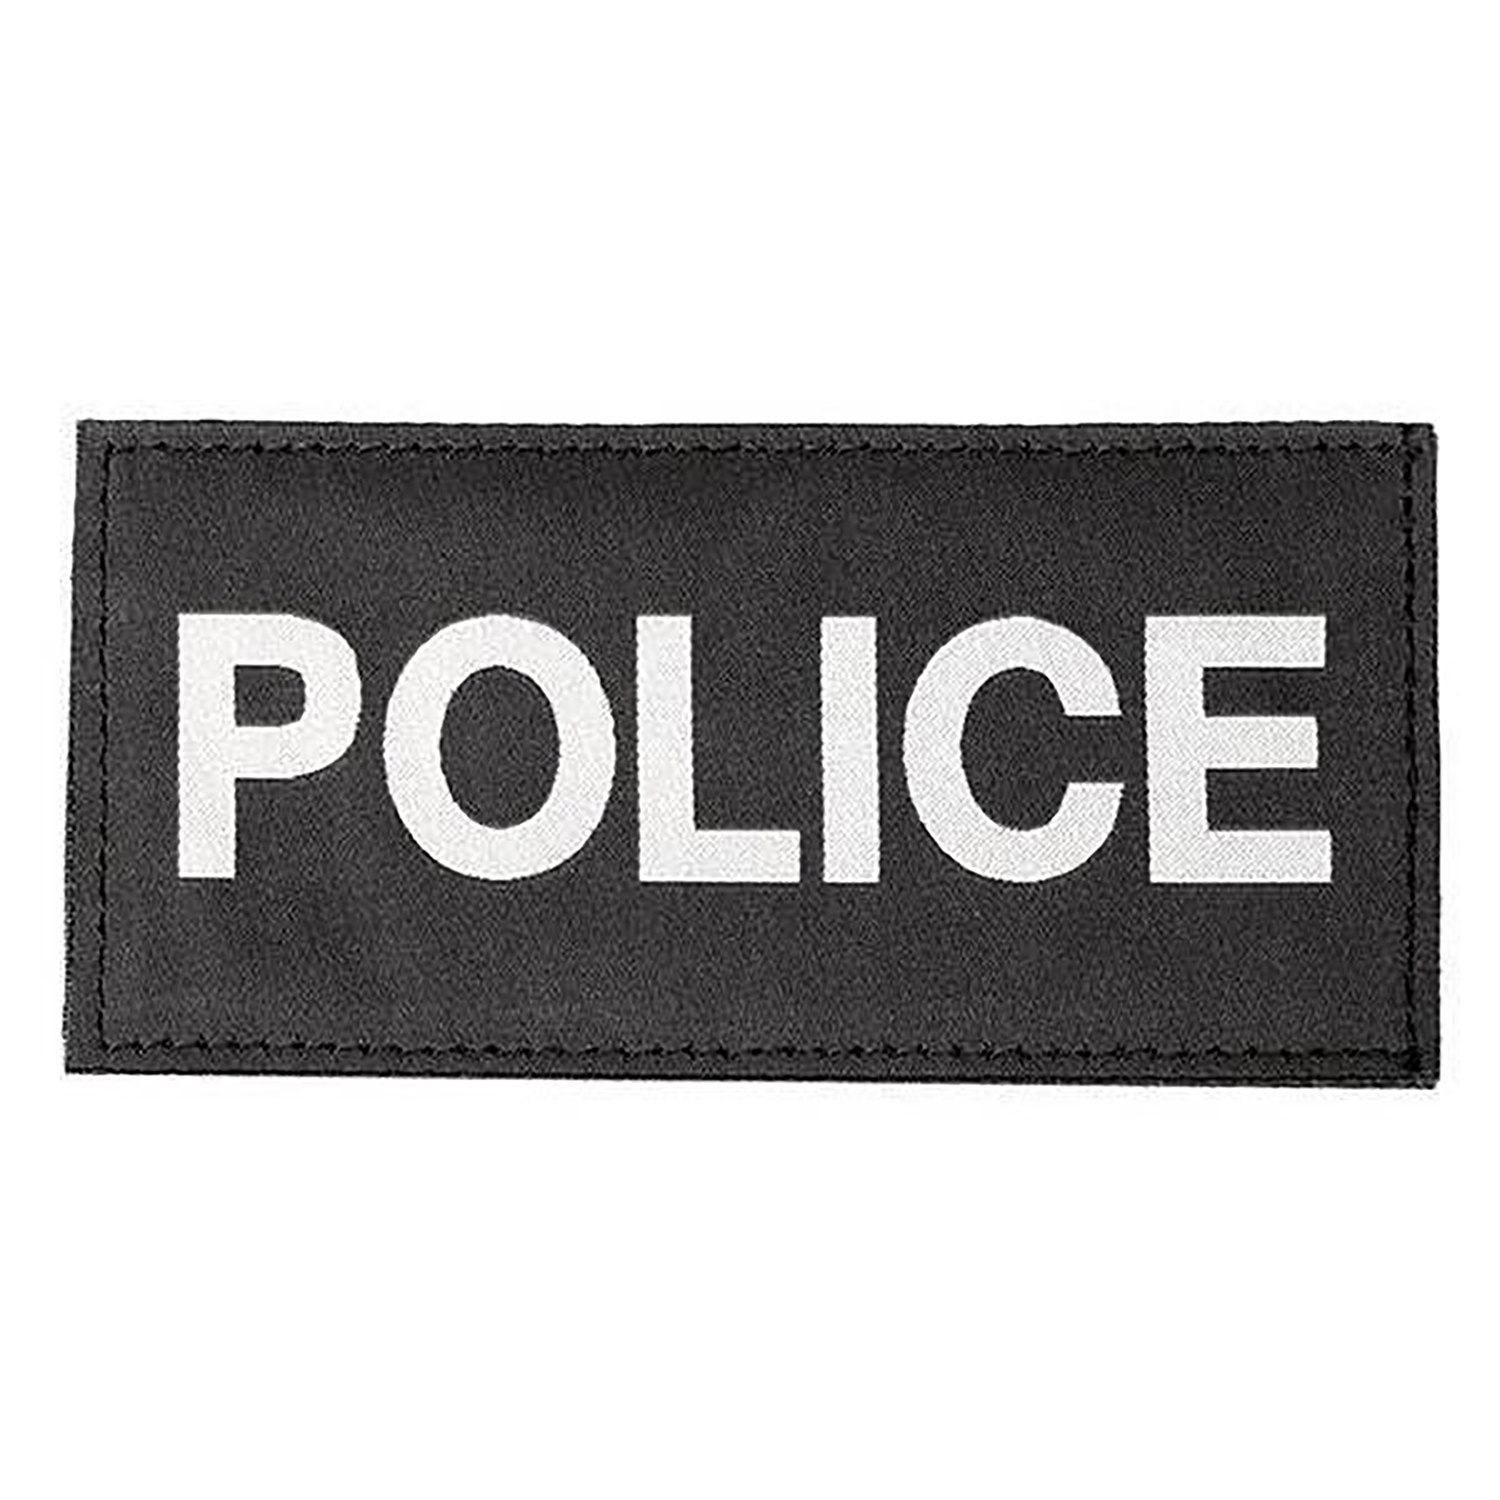 Blackhawk Police Patch